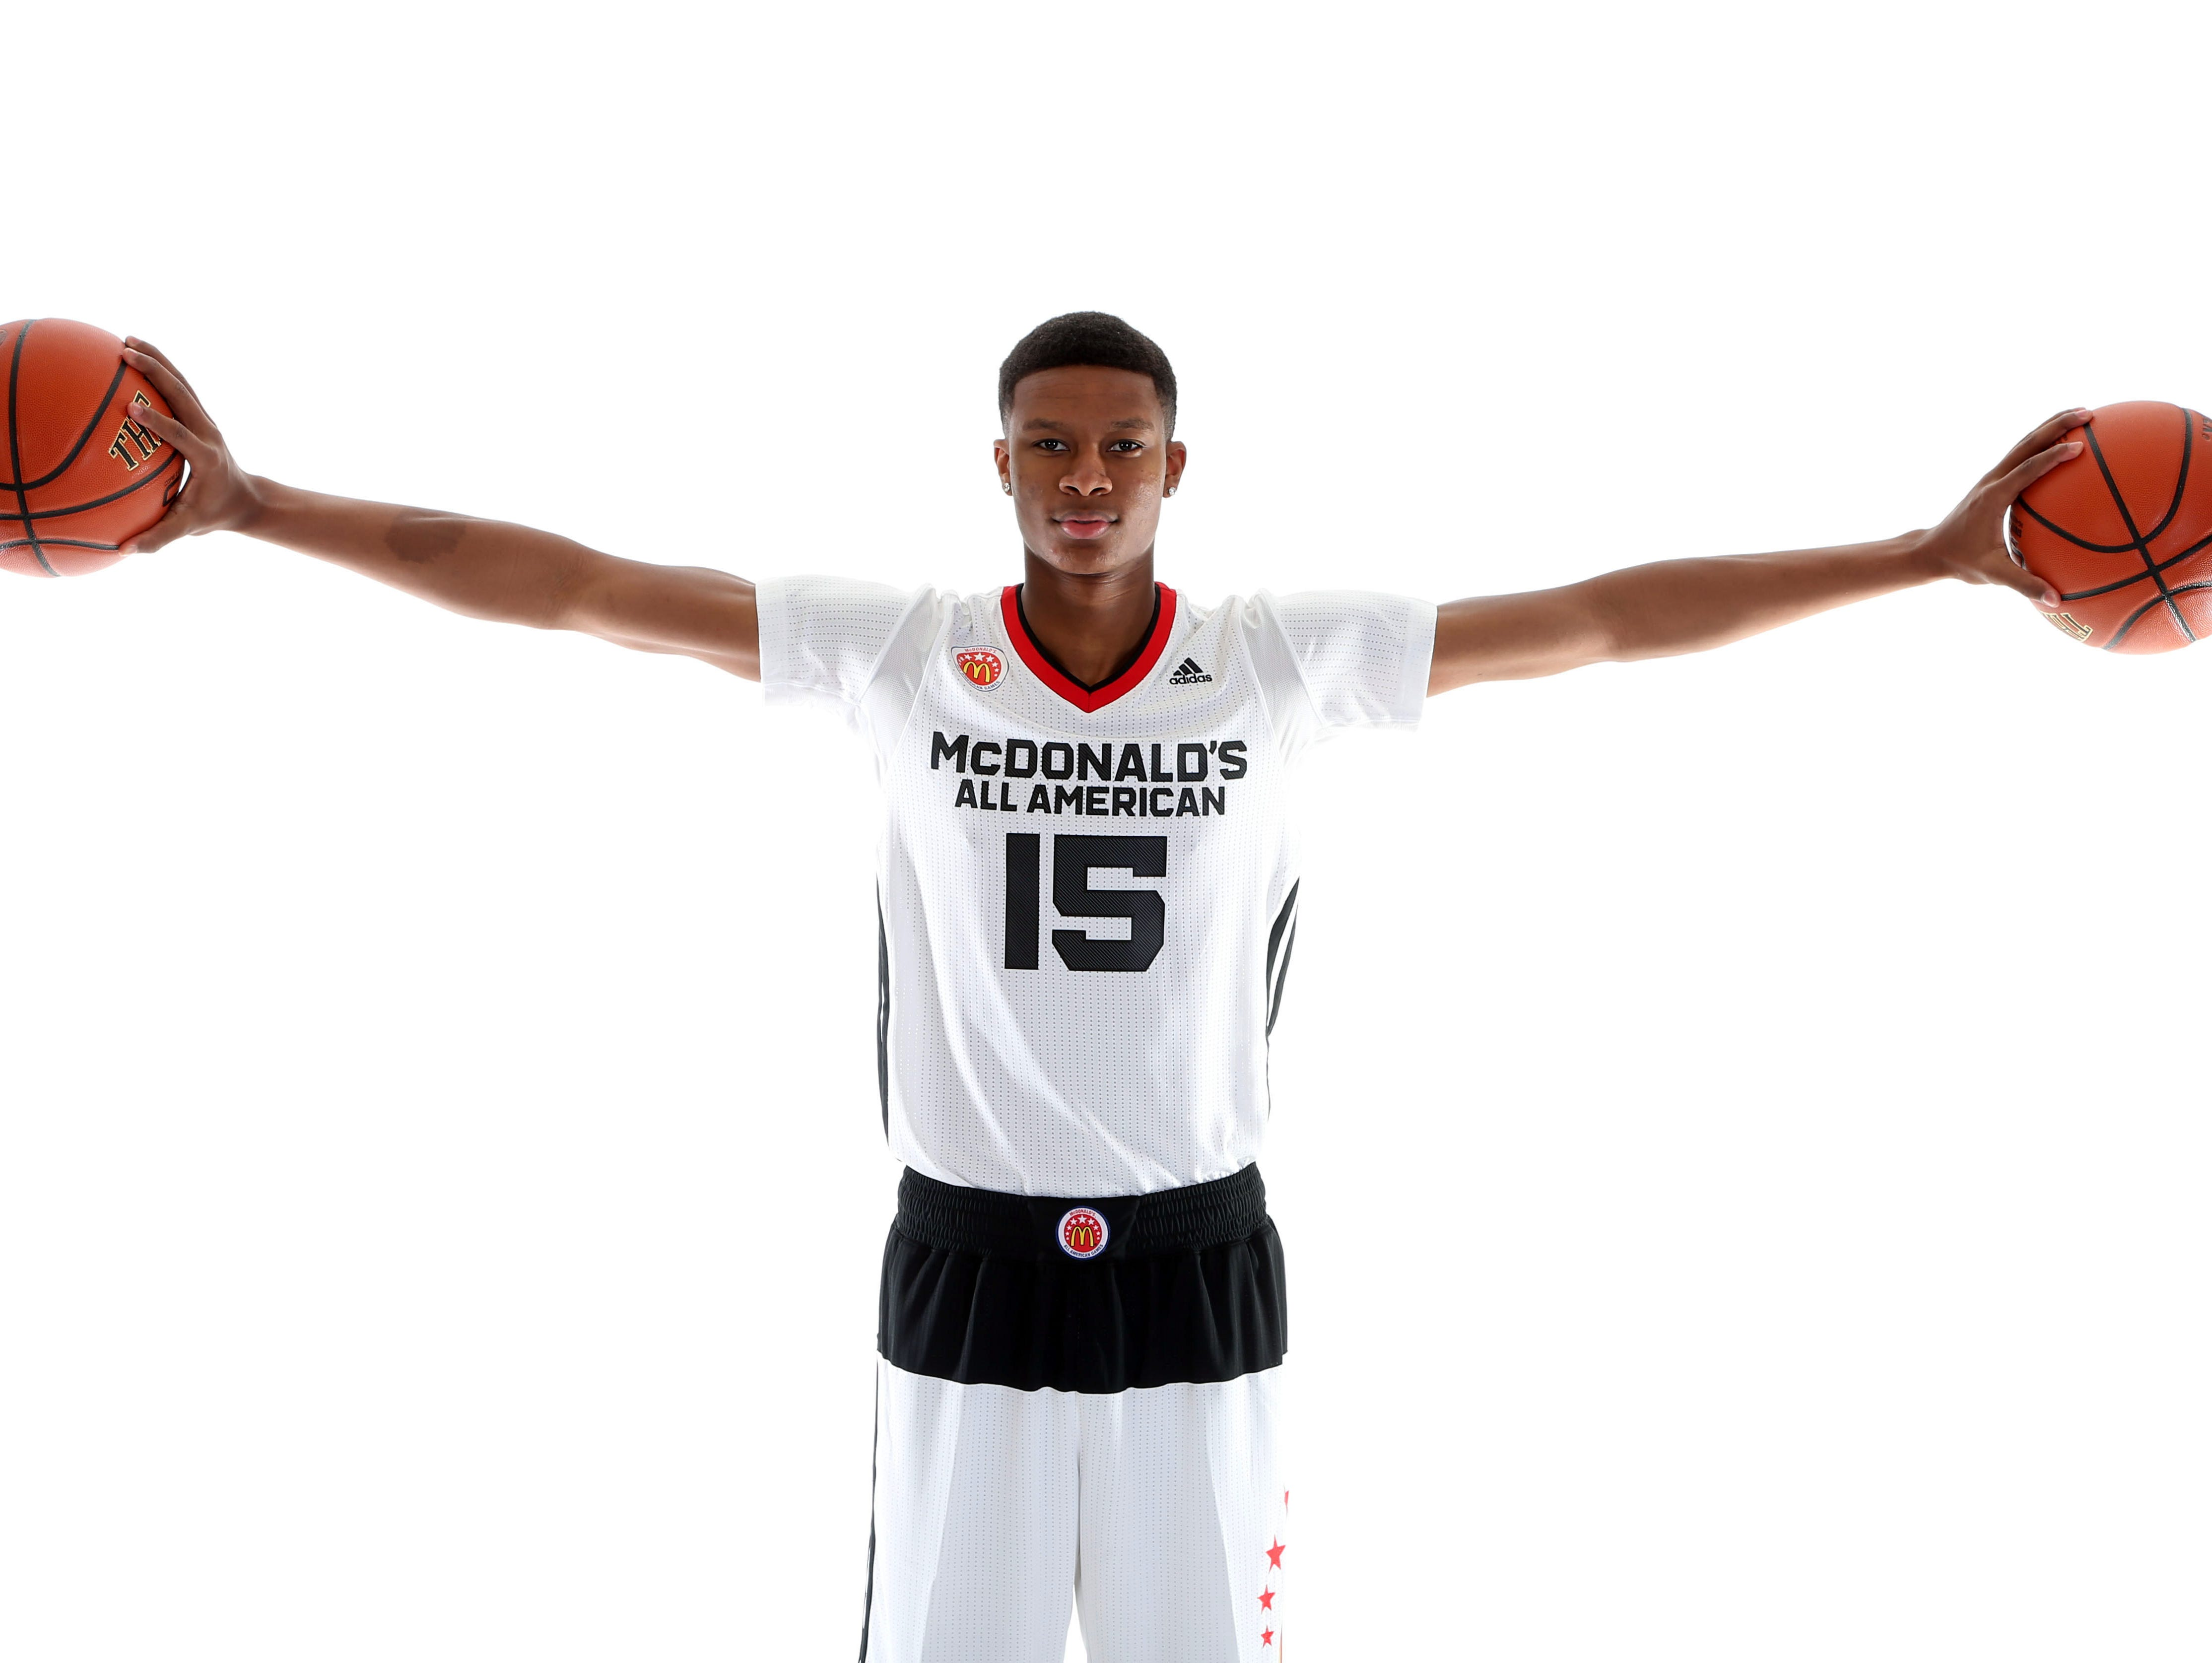 Mar 28, 2015; Chicago, IL, USA; McDonalds High School All American athlete PJ Dozier (15) poses for pictures during portrait day at the Westin Hotel. Mandatory Credit: Brian Spurlock-USA TODAY Sports